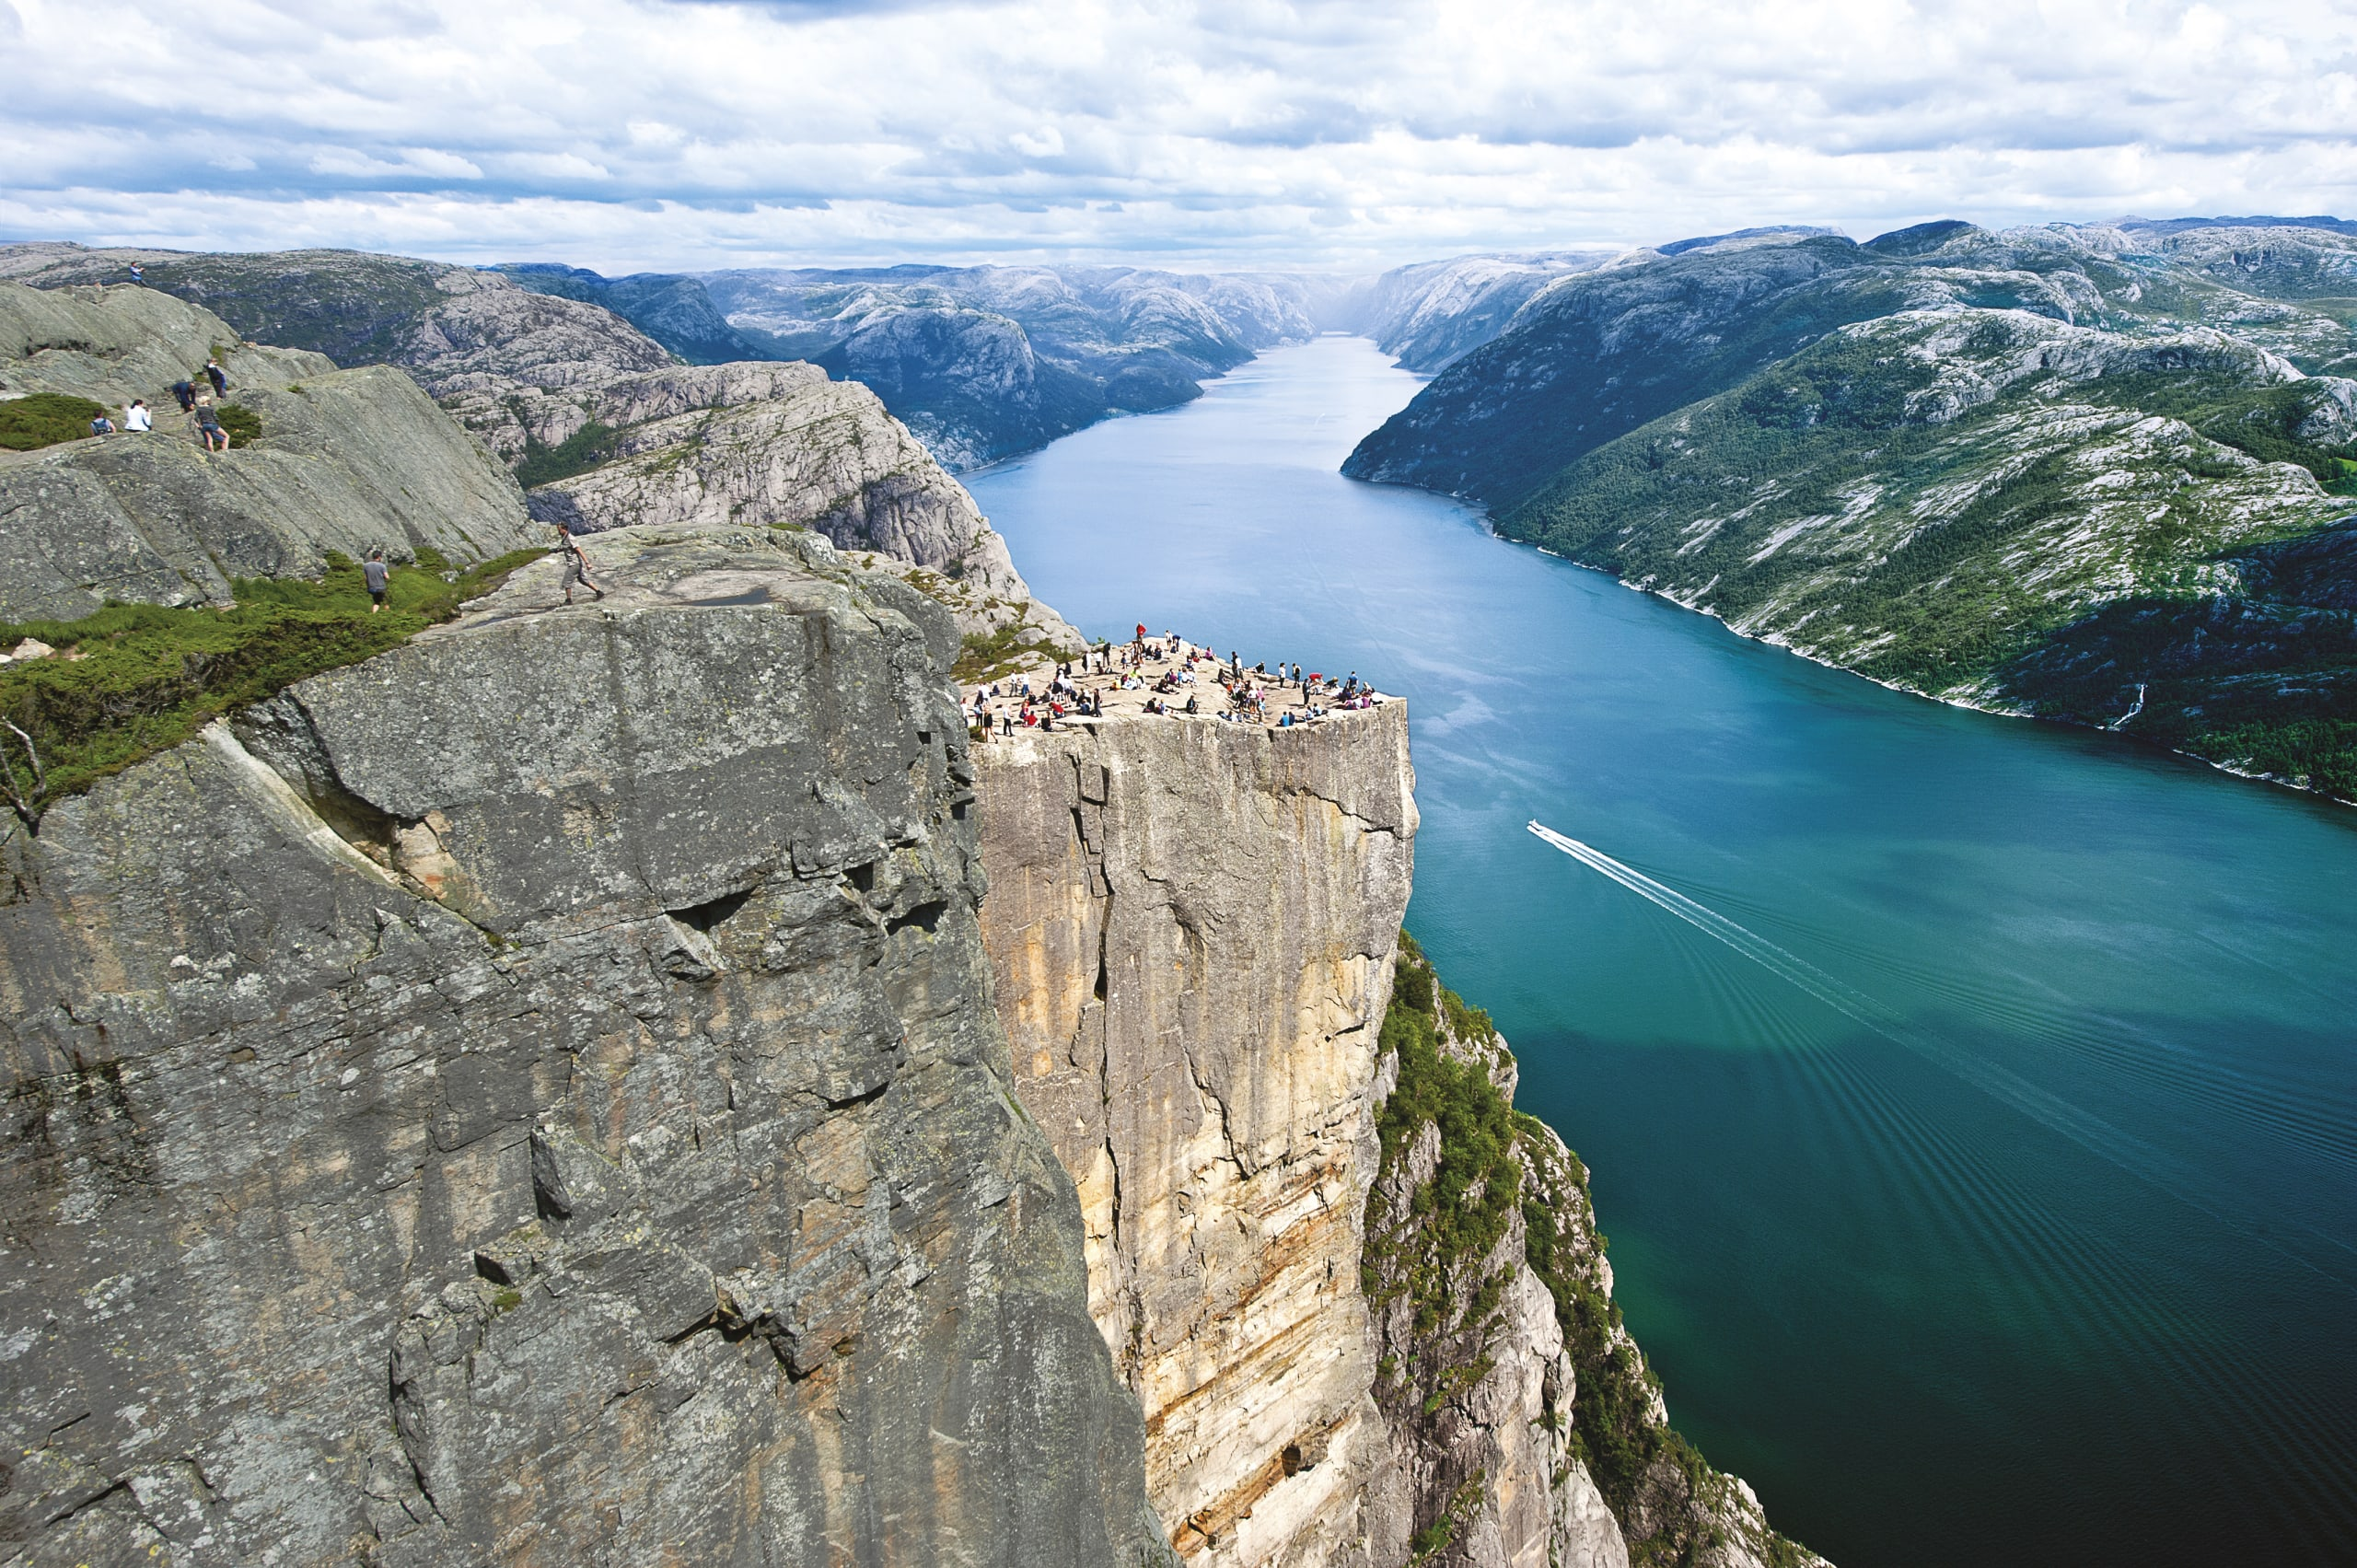 View of Preikestolen plateau